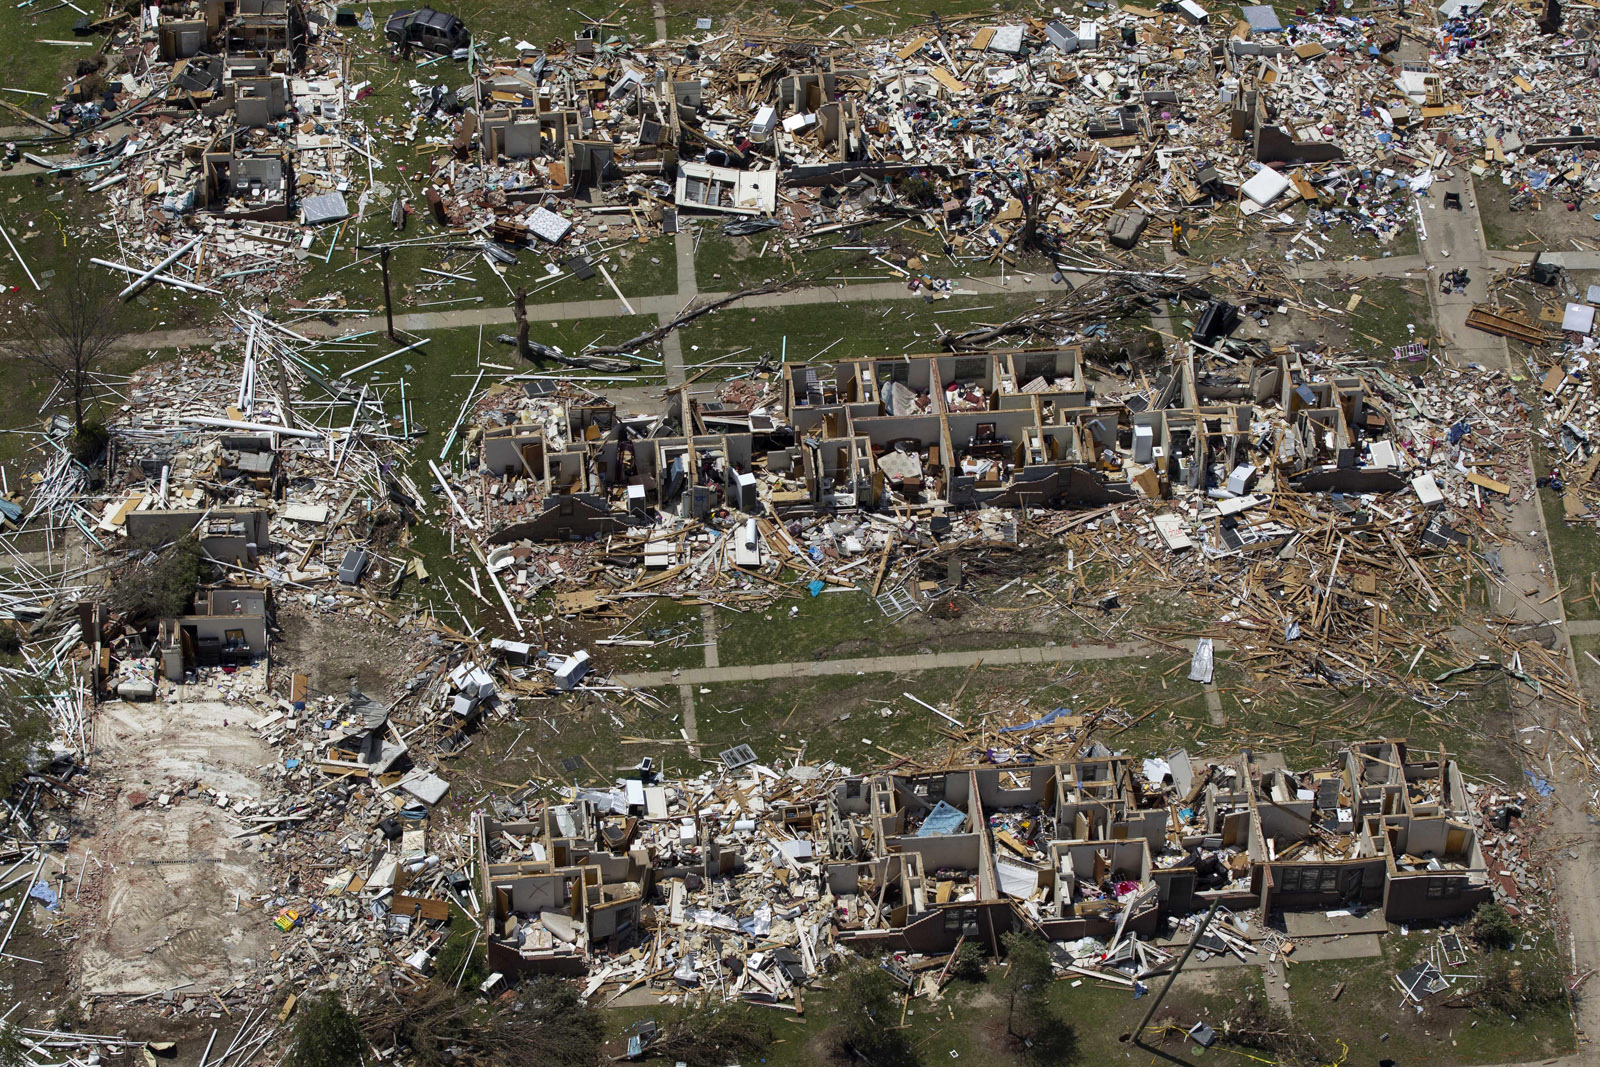 FILE — In this May 7, 2011 aerial file photo, tornado damage is seen in Tuscaloosa, Ala. America's wild weather year has hit yet another new high: a devastating dozen billion-dollar catastrophes. The National Oceanic and Atmospheric Administration announced Wednesday that it has recalculated the number of weather disasters passing the billion dollar mark, with two new ones, pushing 2011's total to 12. The two costly additions are the Texas, New Mexico and Arizona wildfires and the mid June tornadoes and severe weather. (AP Photo/Dave Martin, File)